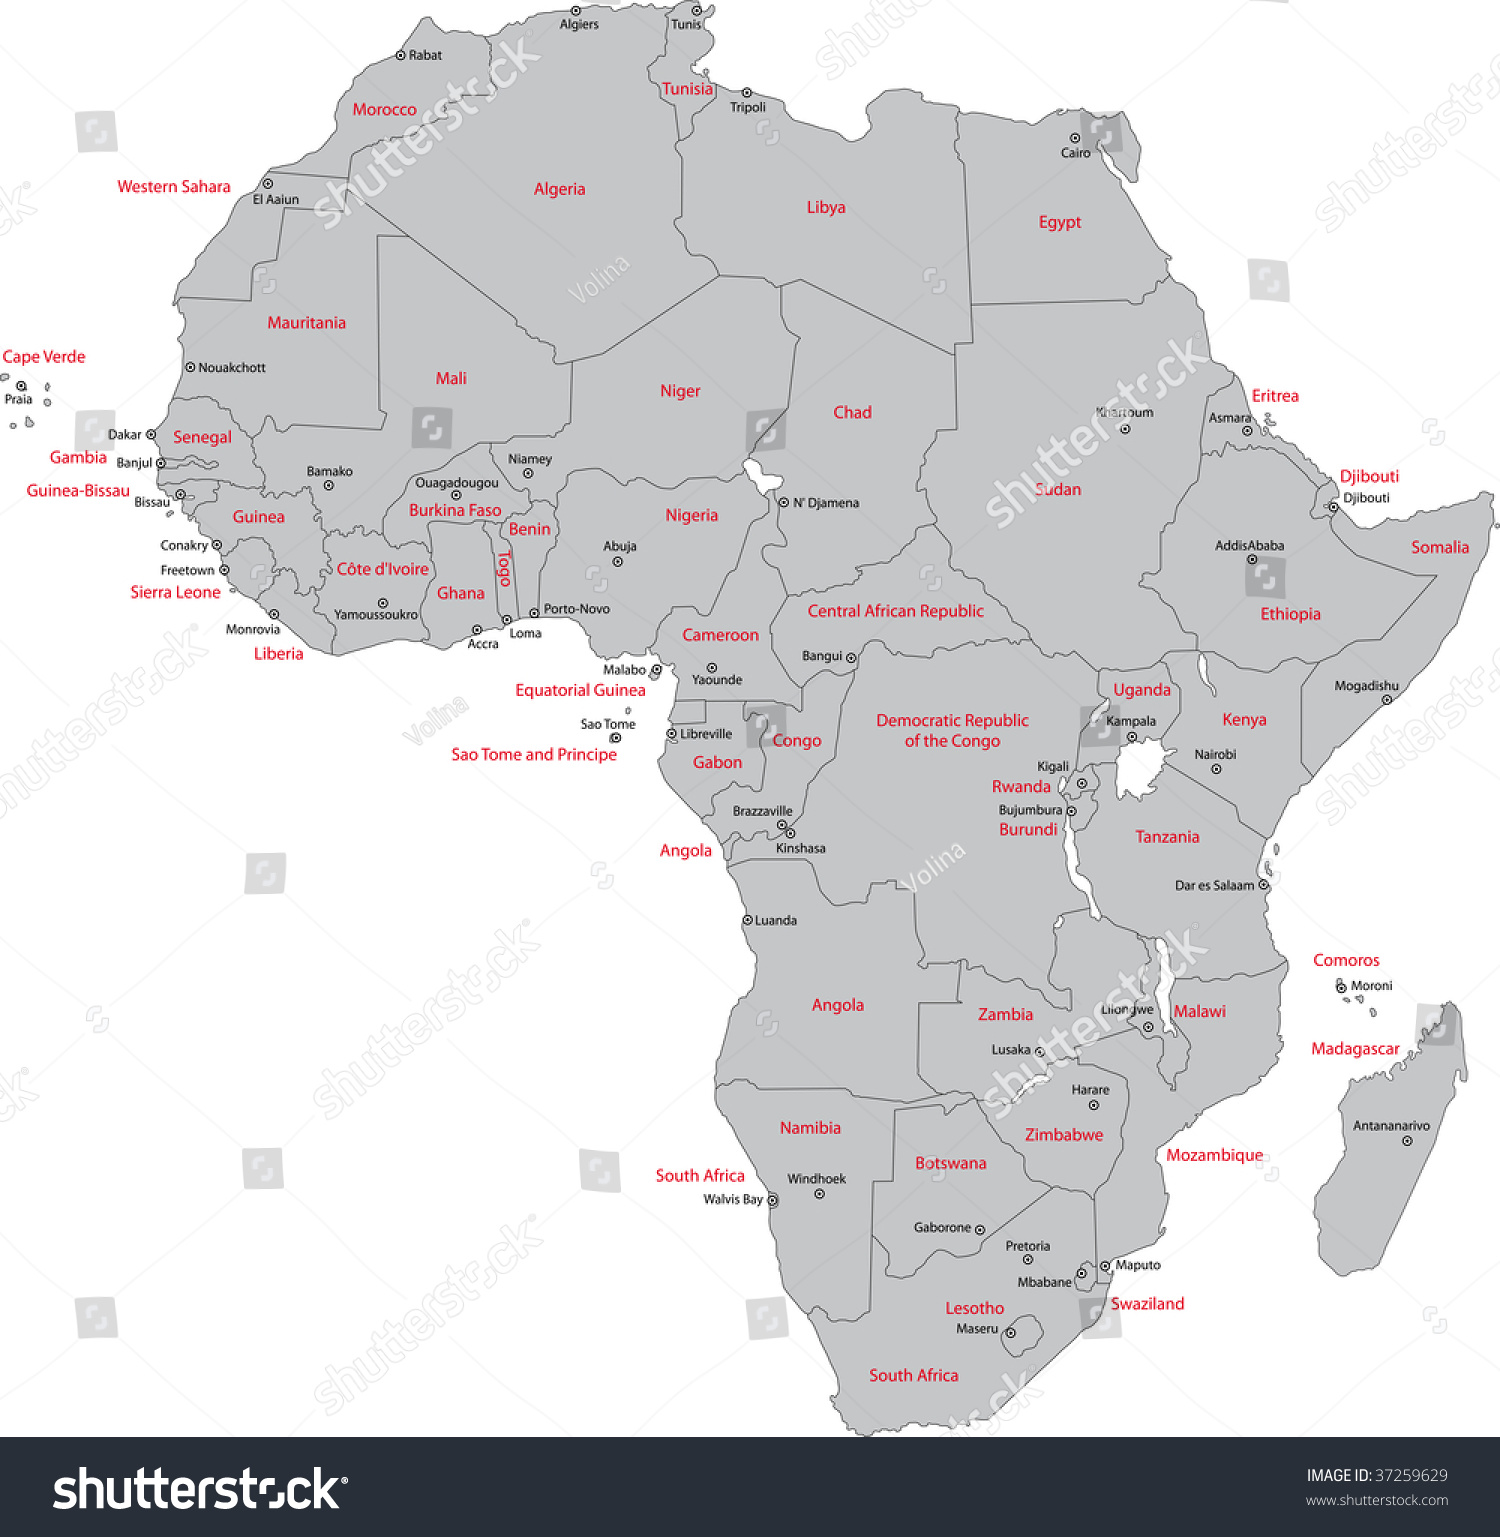 Africa map countries capital cities stock illustration 37259629 africa map with countries and capital cities gumiabroncs Image collections